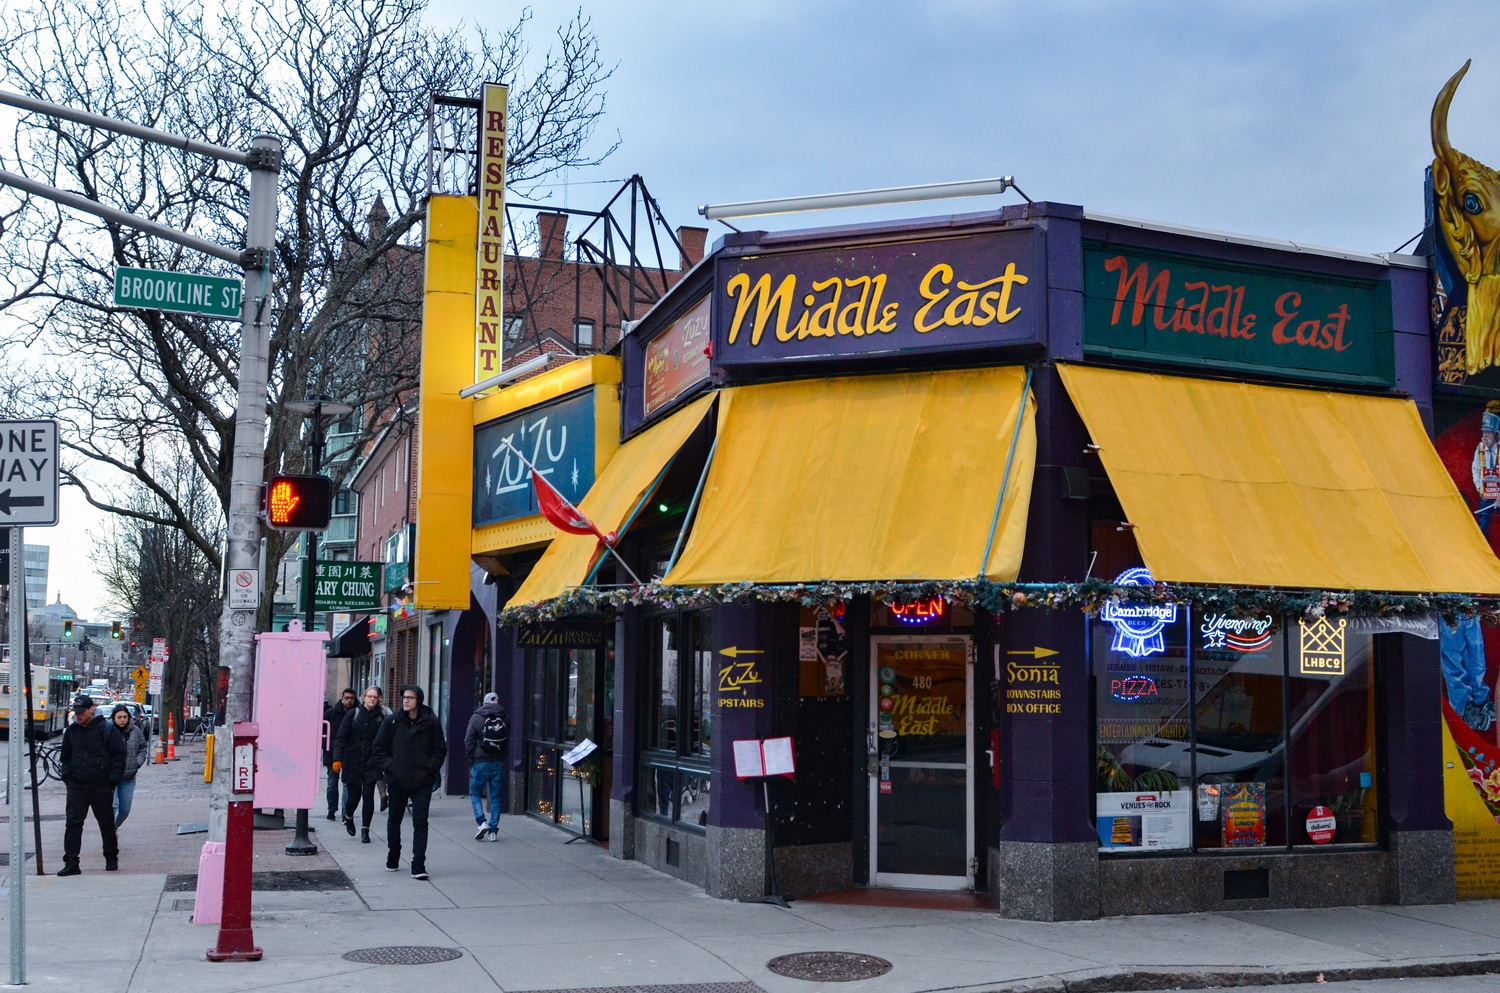 The Middle East Restaurant and Nightclub building is up for sale.